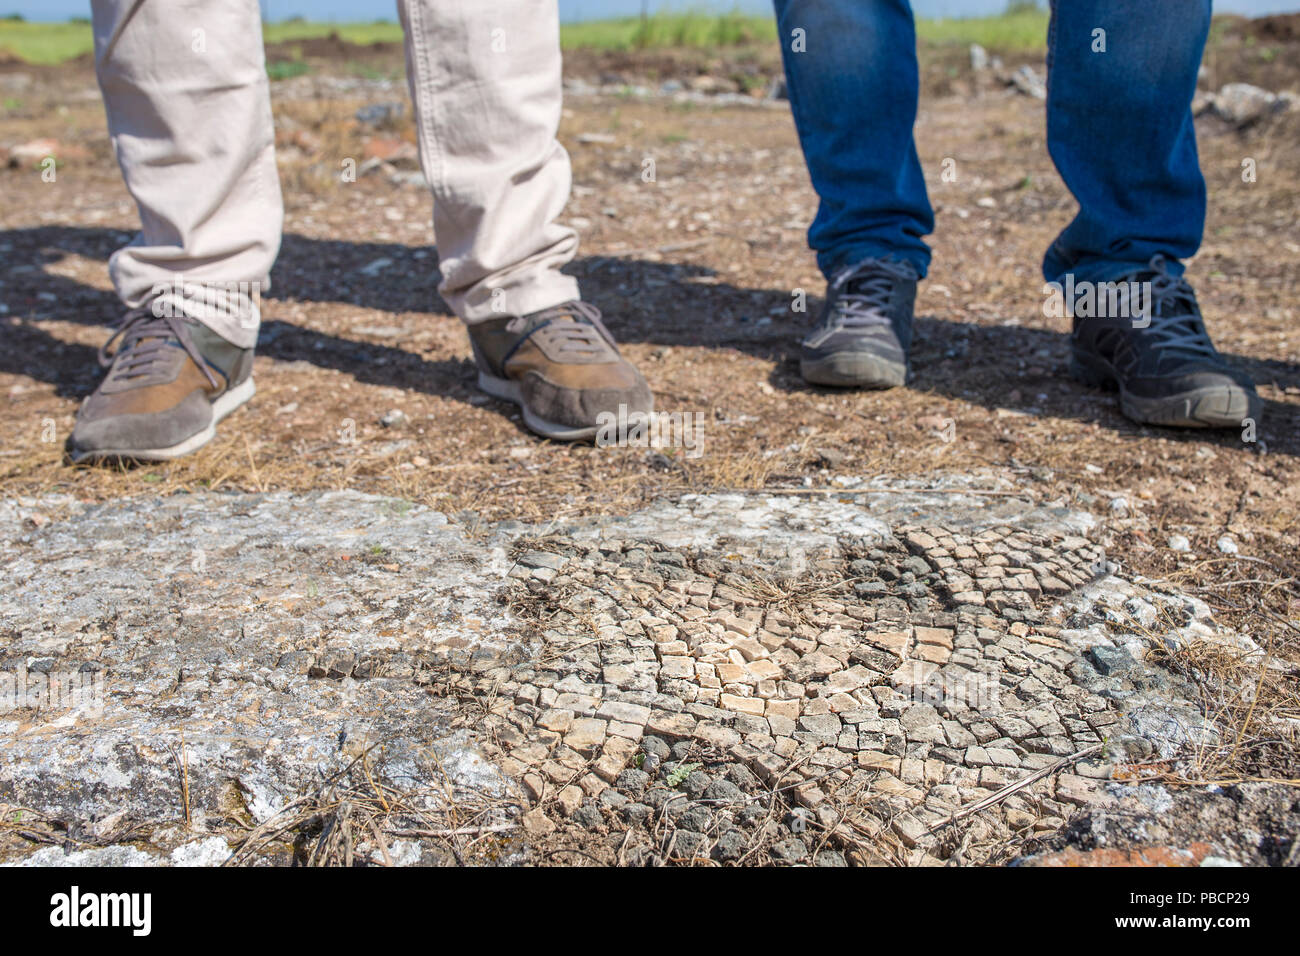 Archeological site supervisors feet. Ancient Mosaic on the forefront - Stock Image